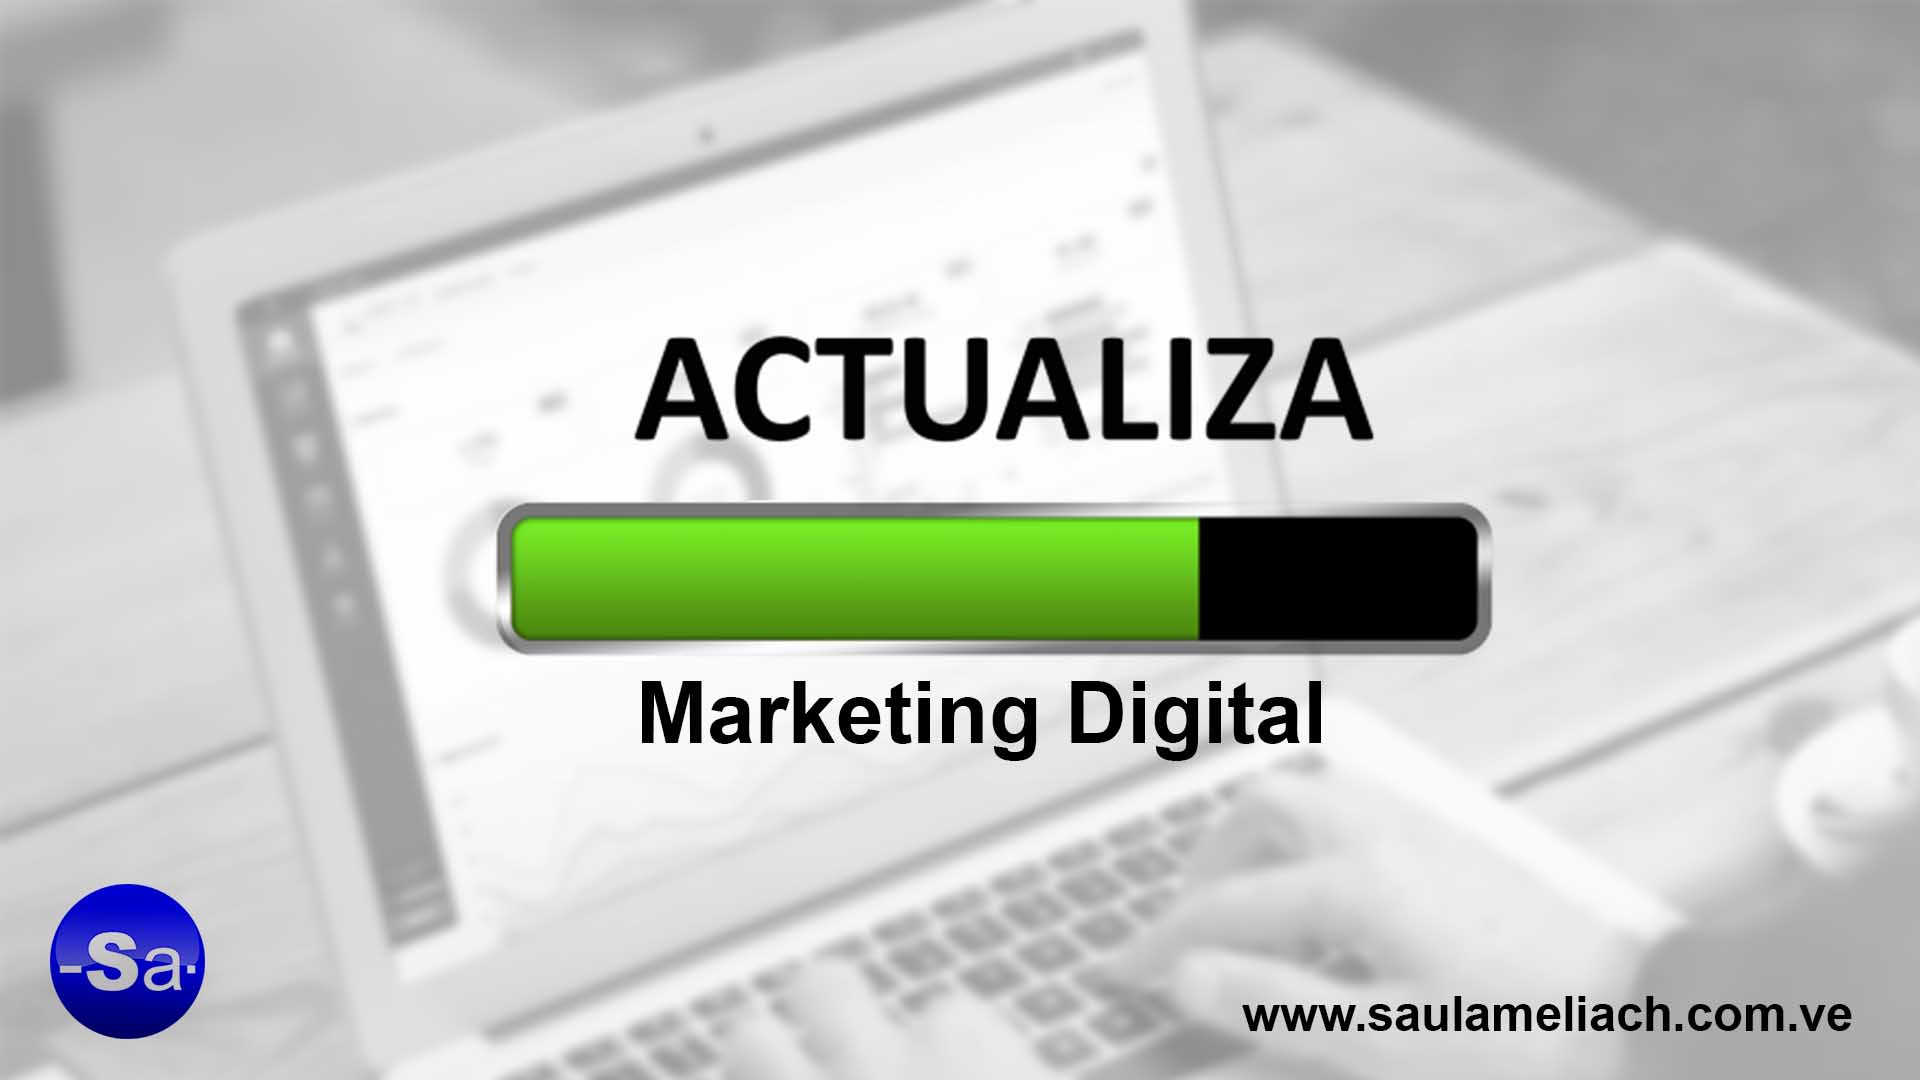 Apps que trabajan dentro del Marketing Digital - saul ameliach